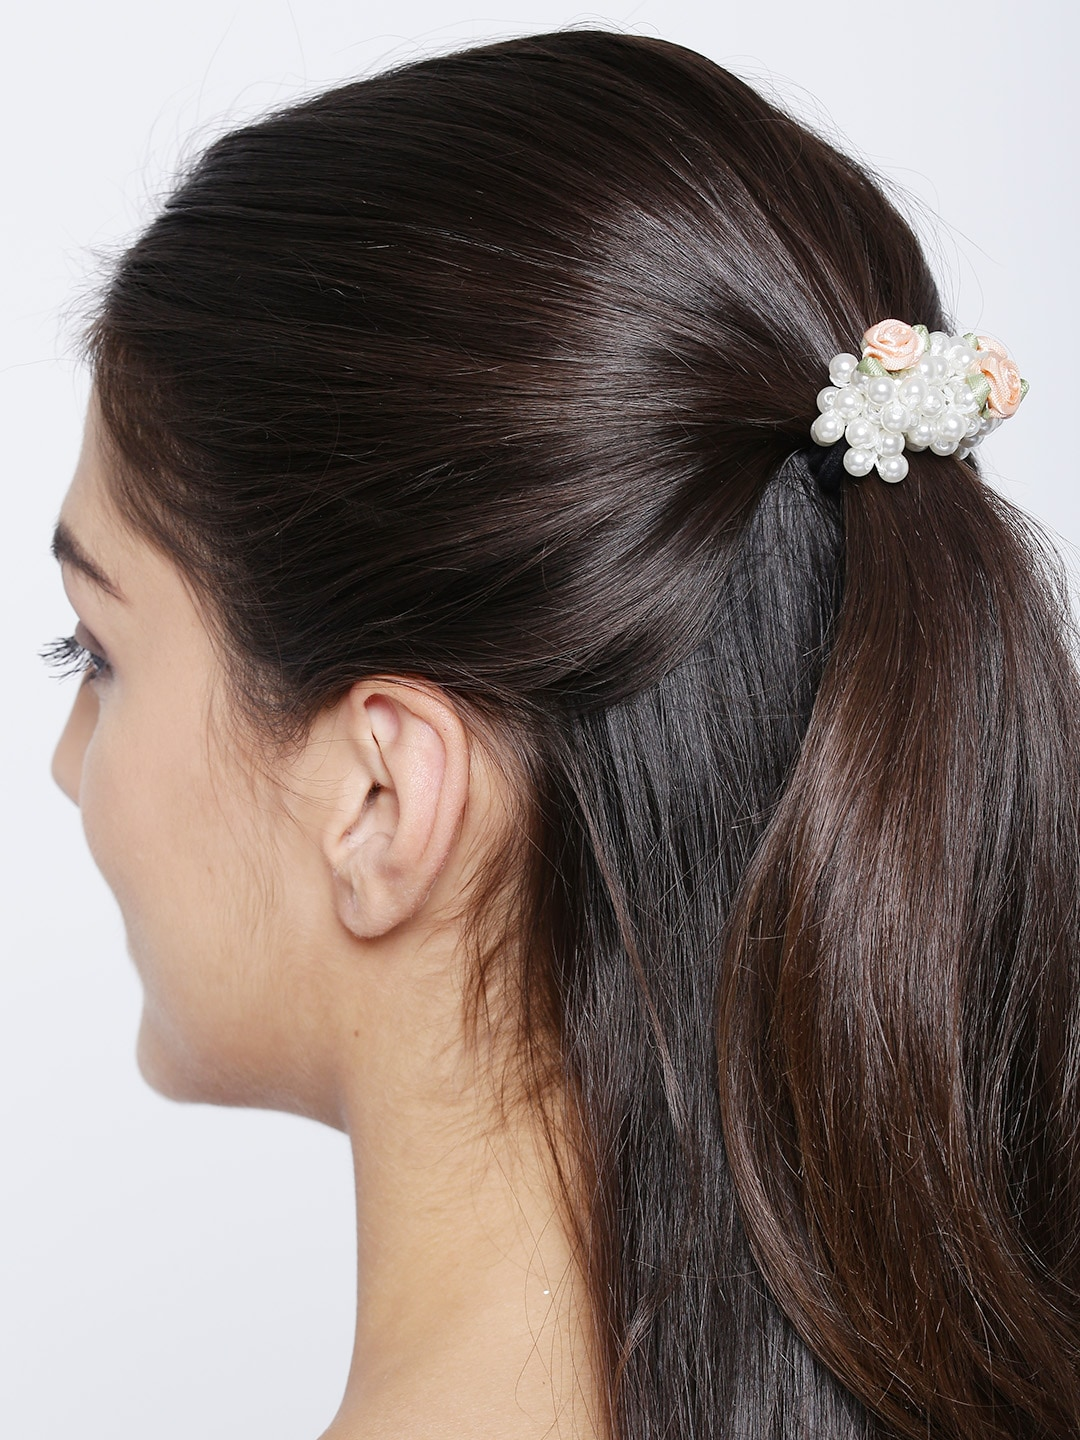 Hair accessories for wedding online india - Hair Accessories For Wedding Online India 45